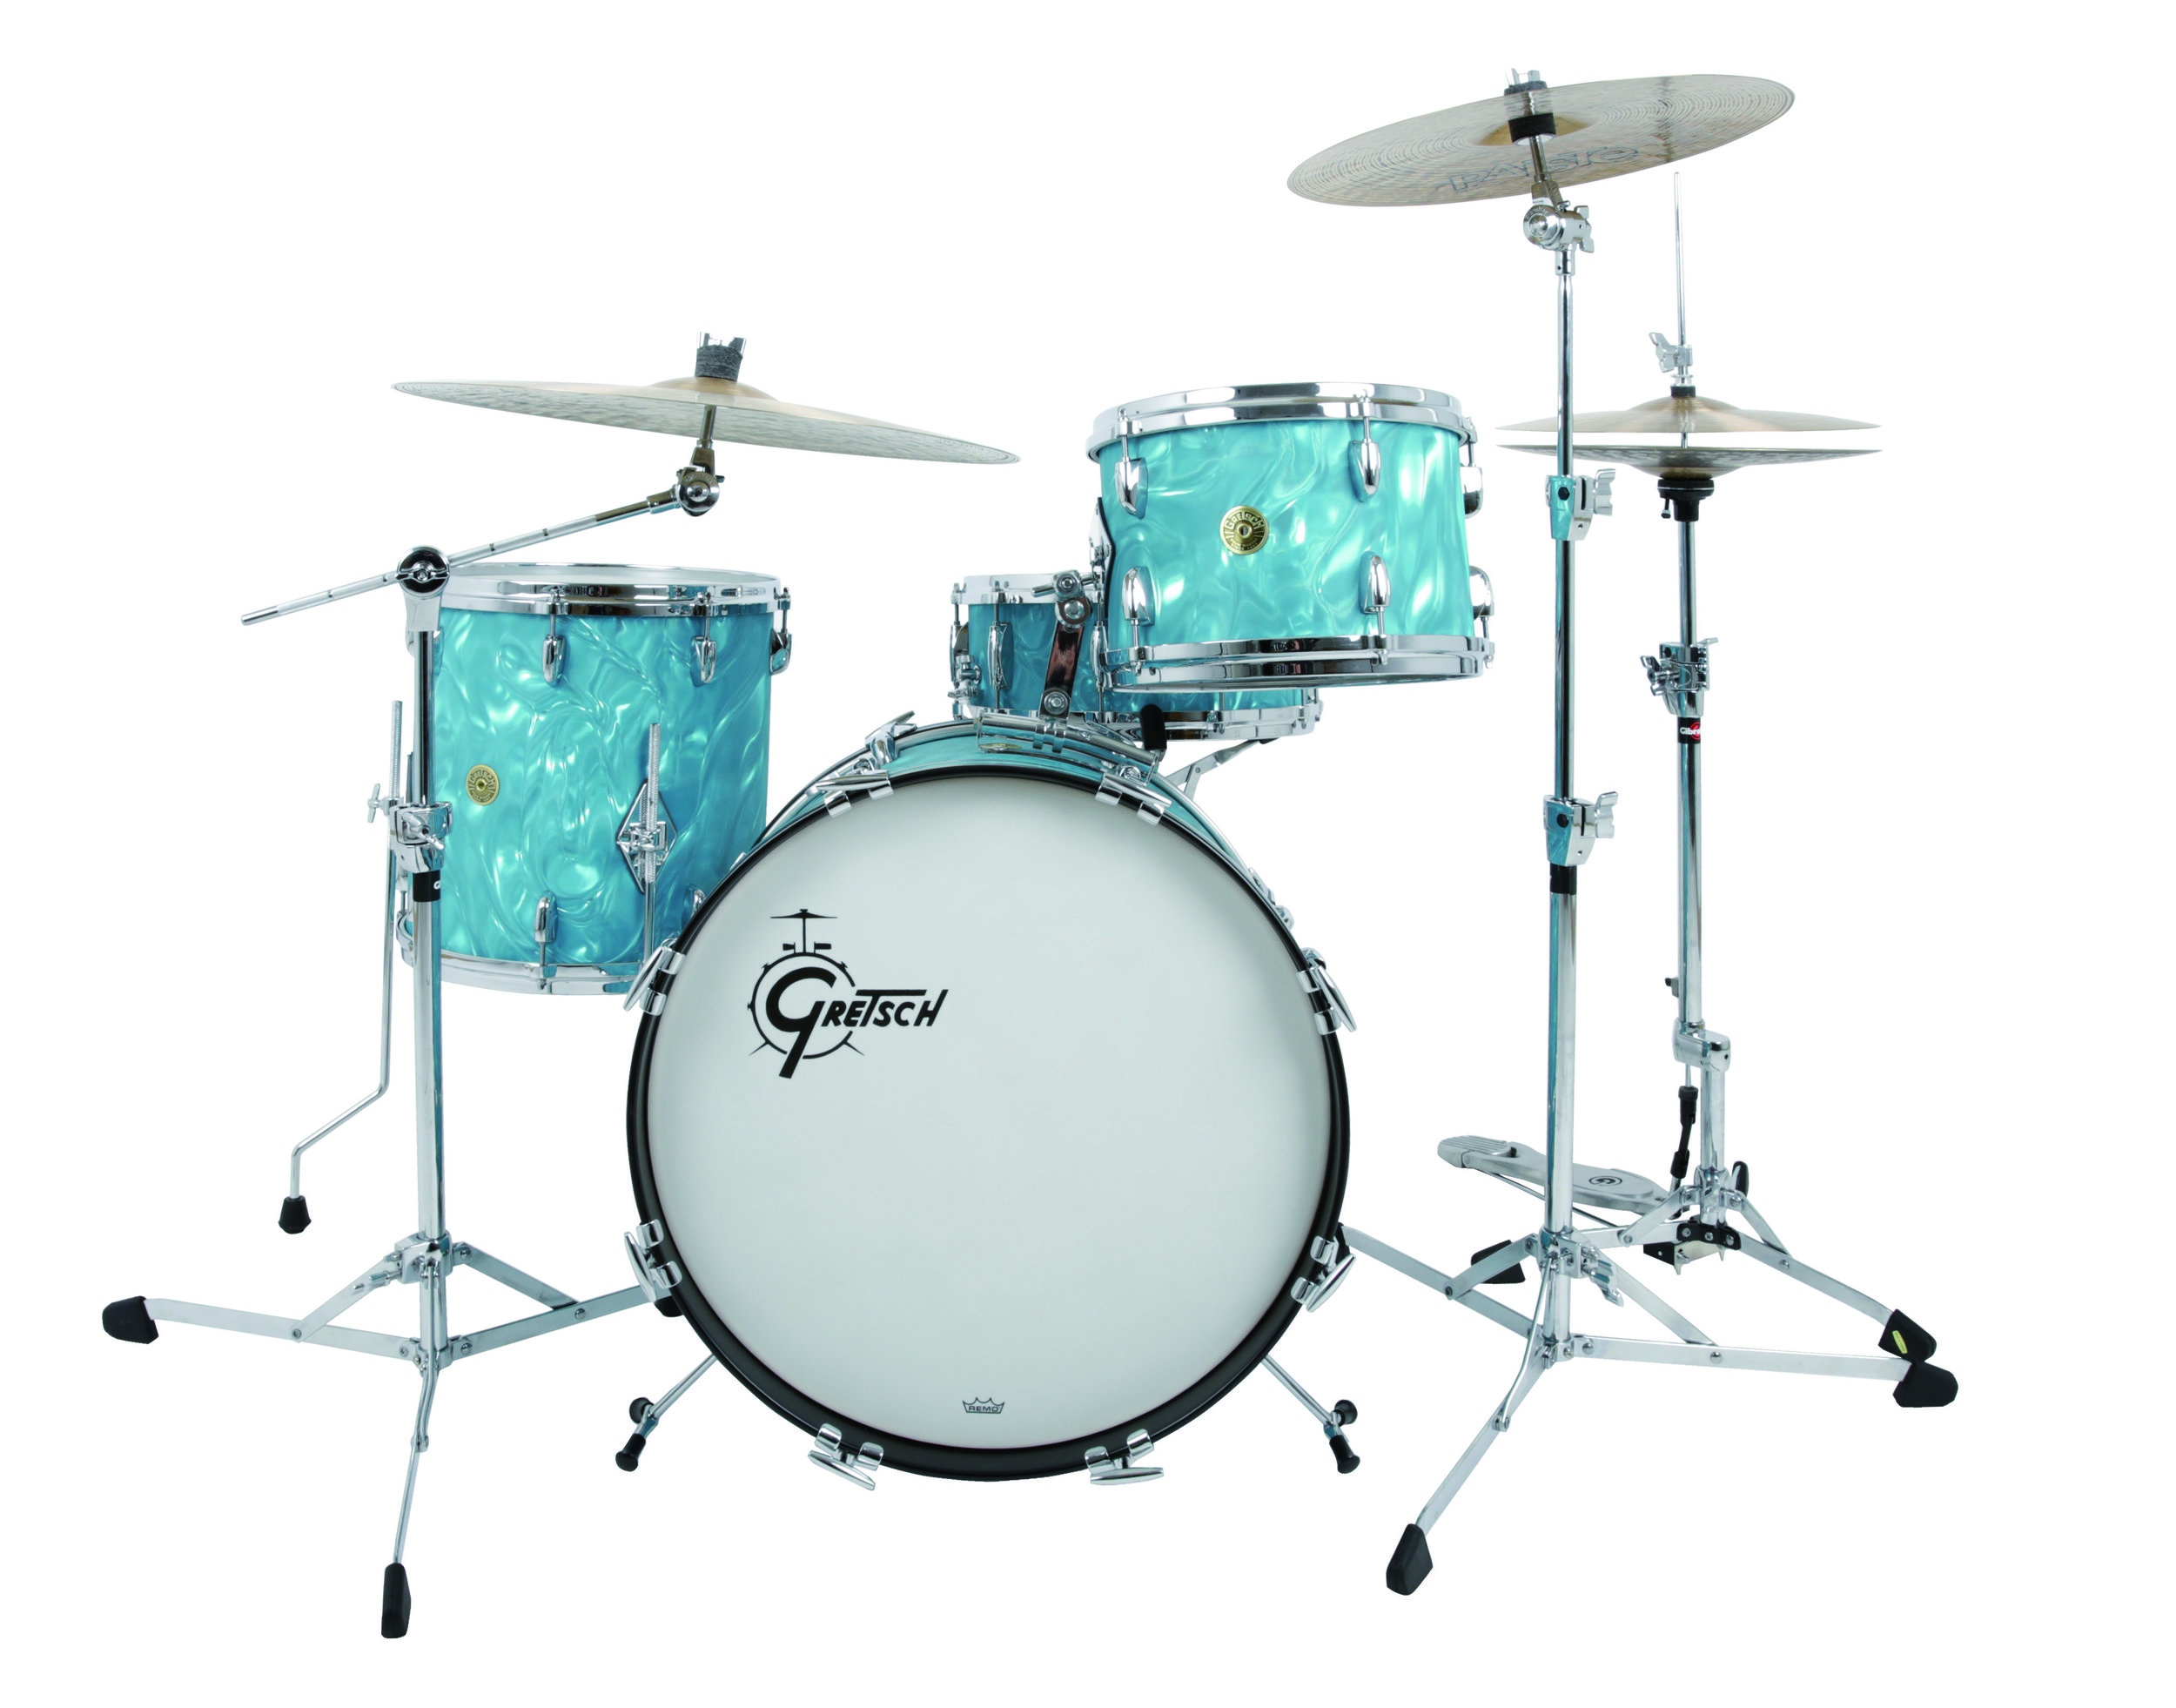 gretsch usa custom 4pc shell pack aqua satin flame drummers only. Black Bedroom Furniture Sets. Home Design Ideas